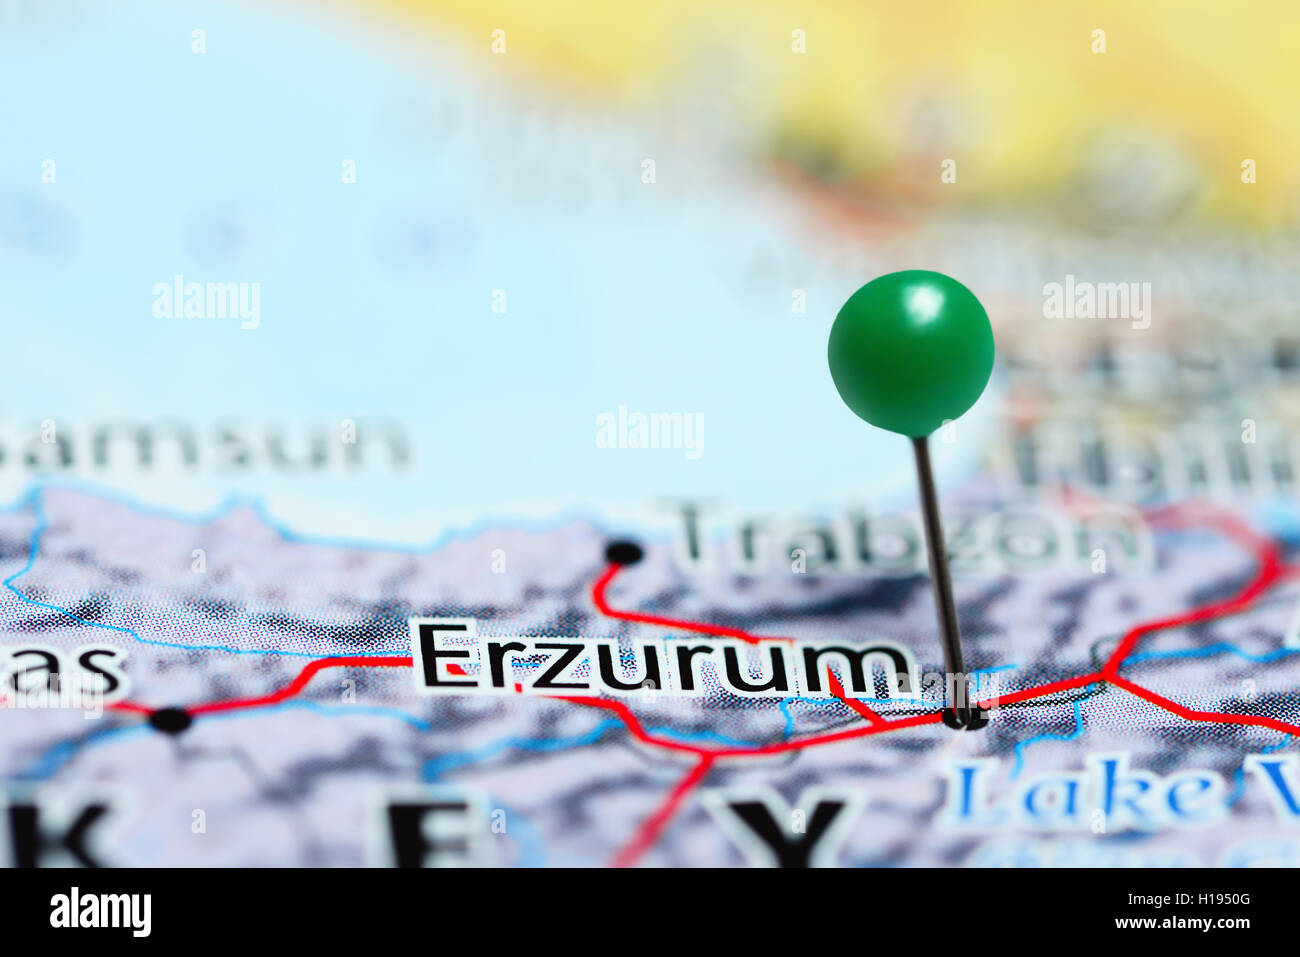 Erzurum pinned on a map of Turkey Stock Photo Royalty Free Image